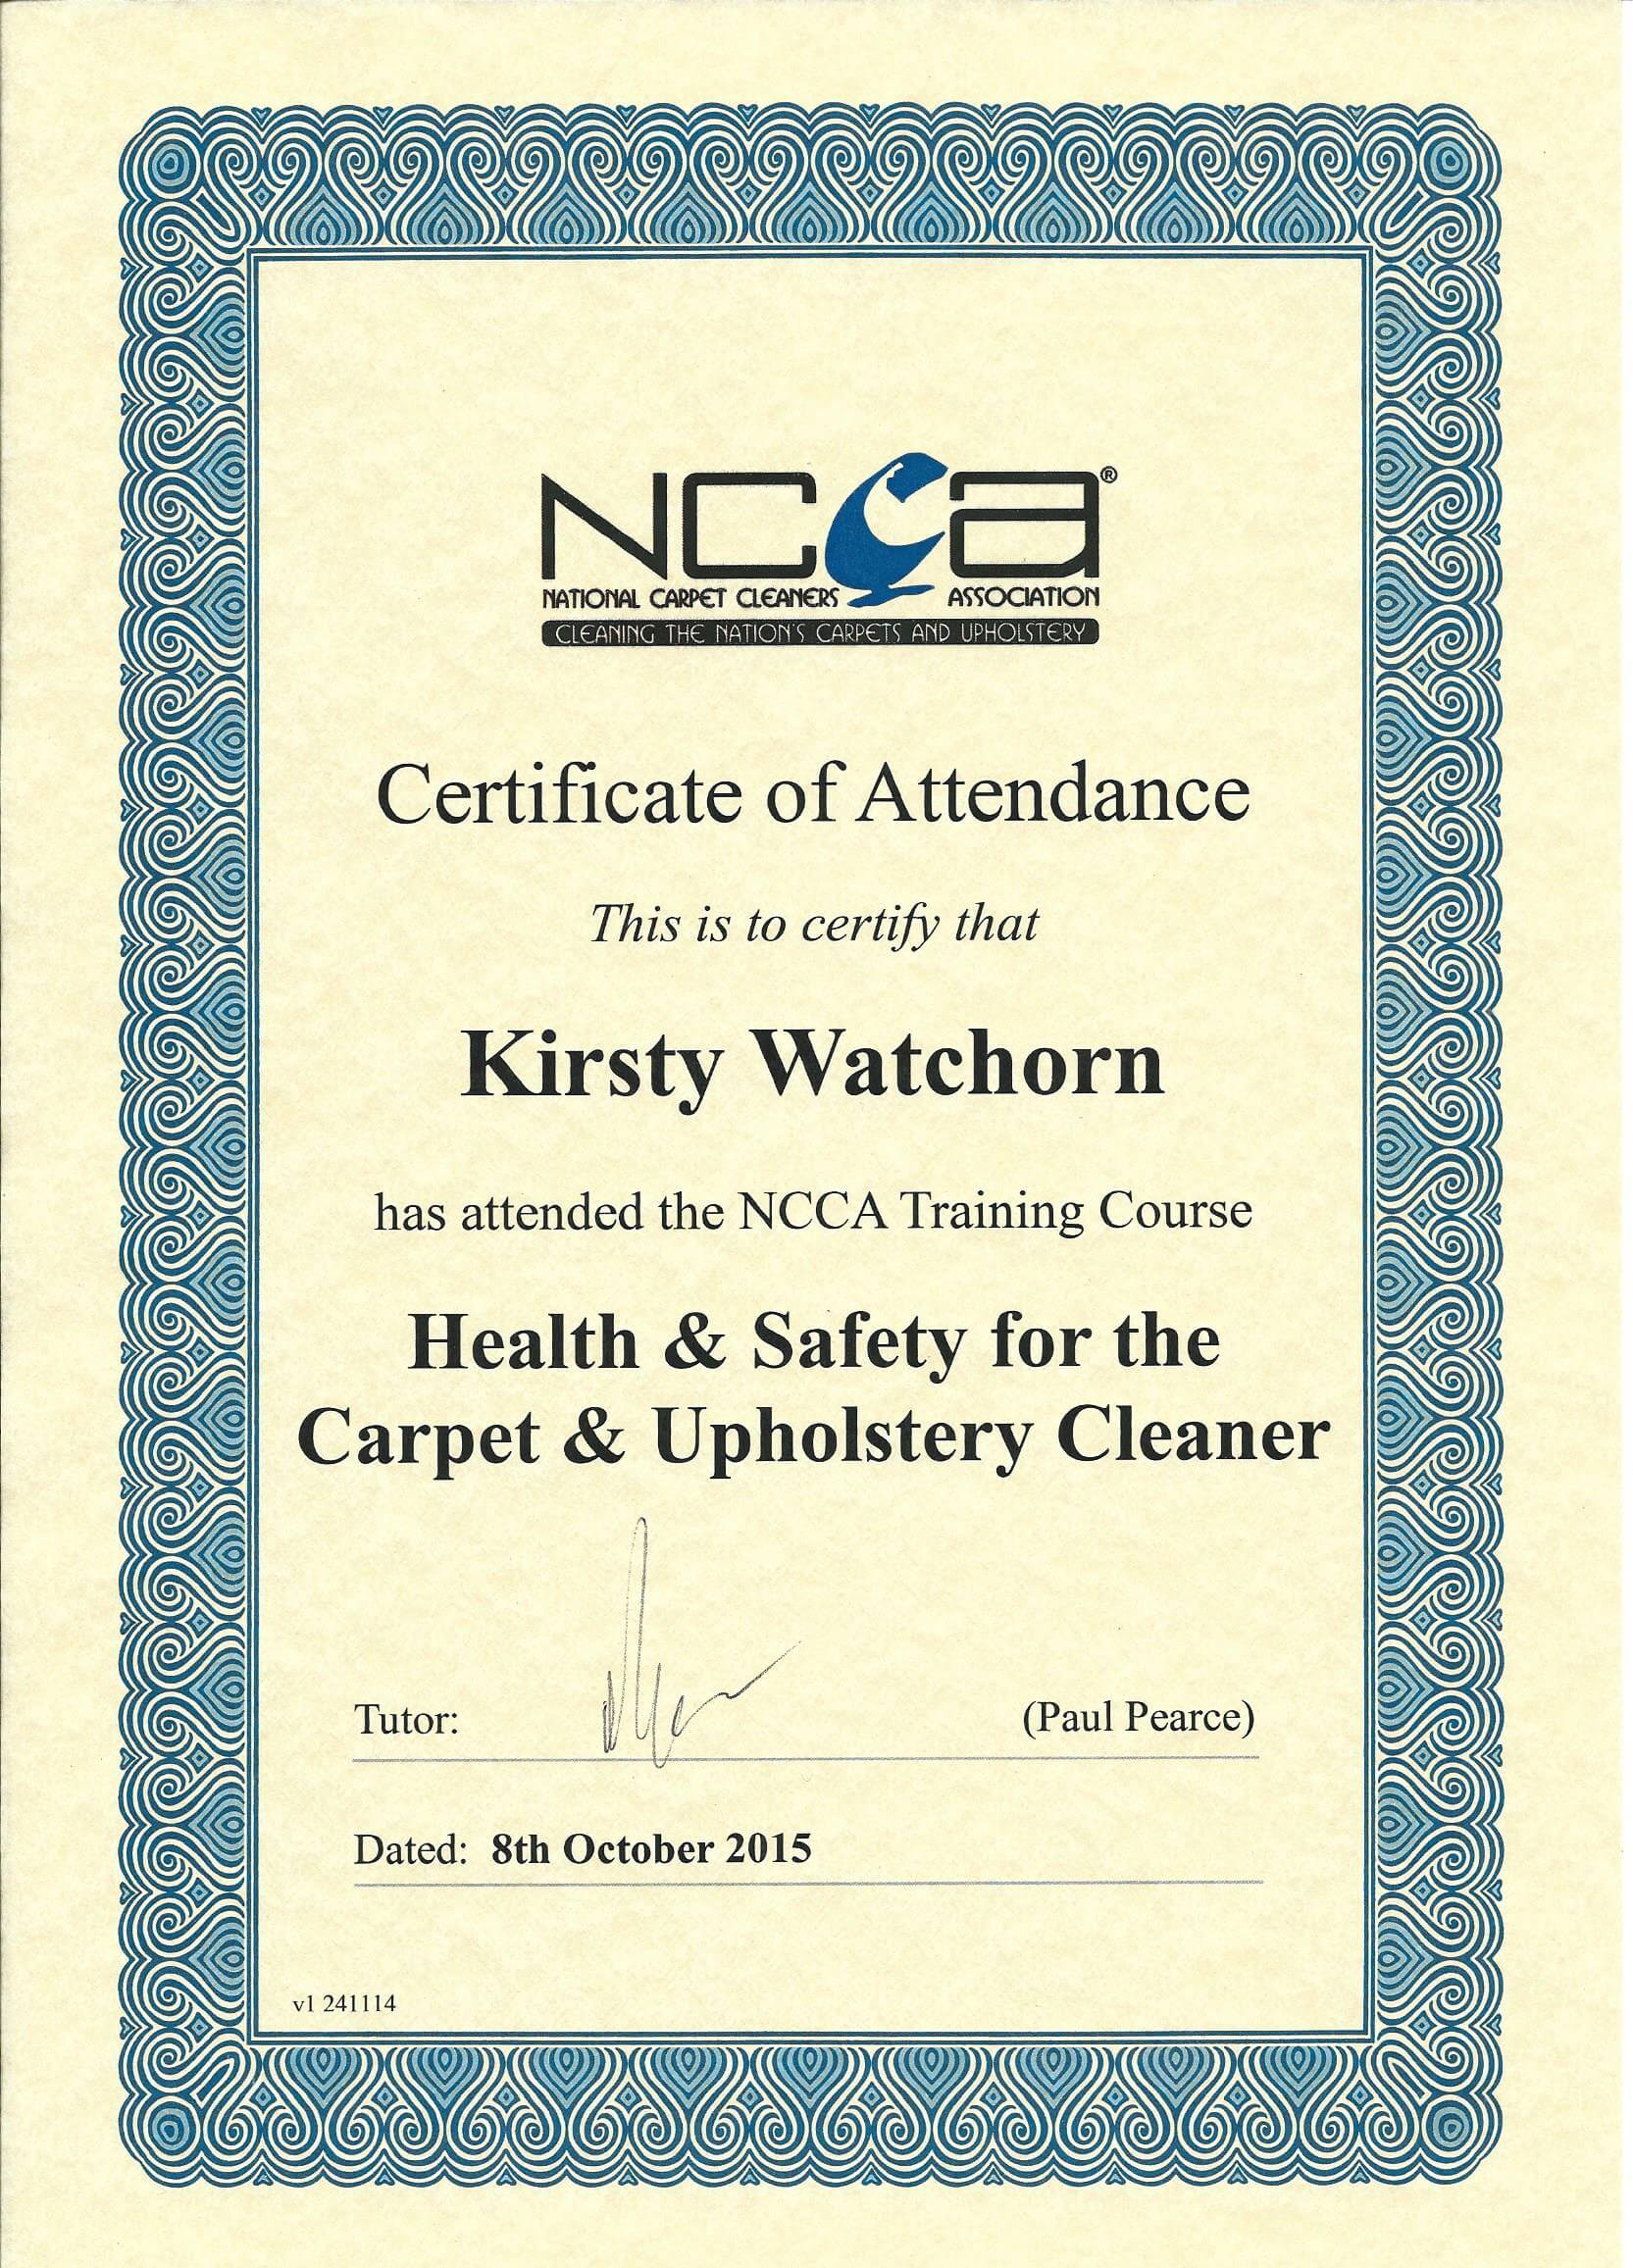 Merlin clean carpet cleaning and upholstery cleaning training and ncca health and safety training certificate 2015 1betcityfo Gallery